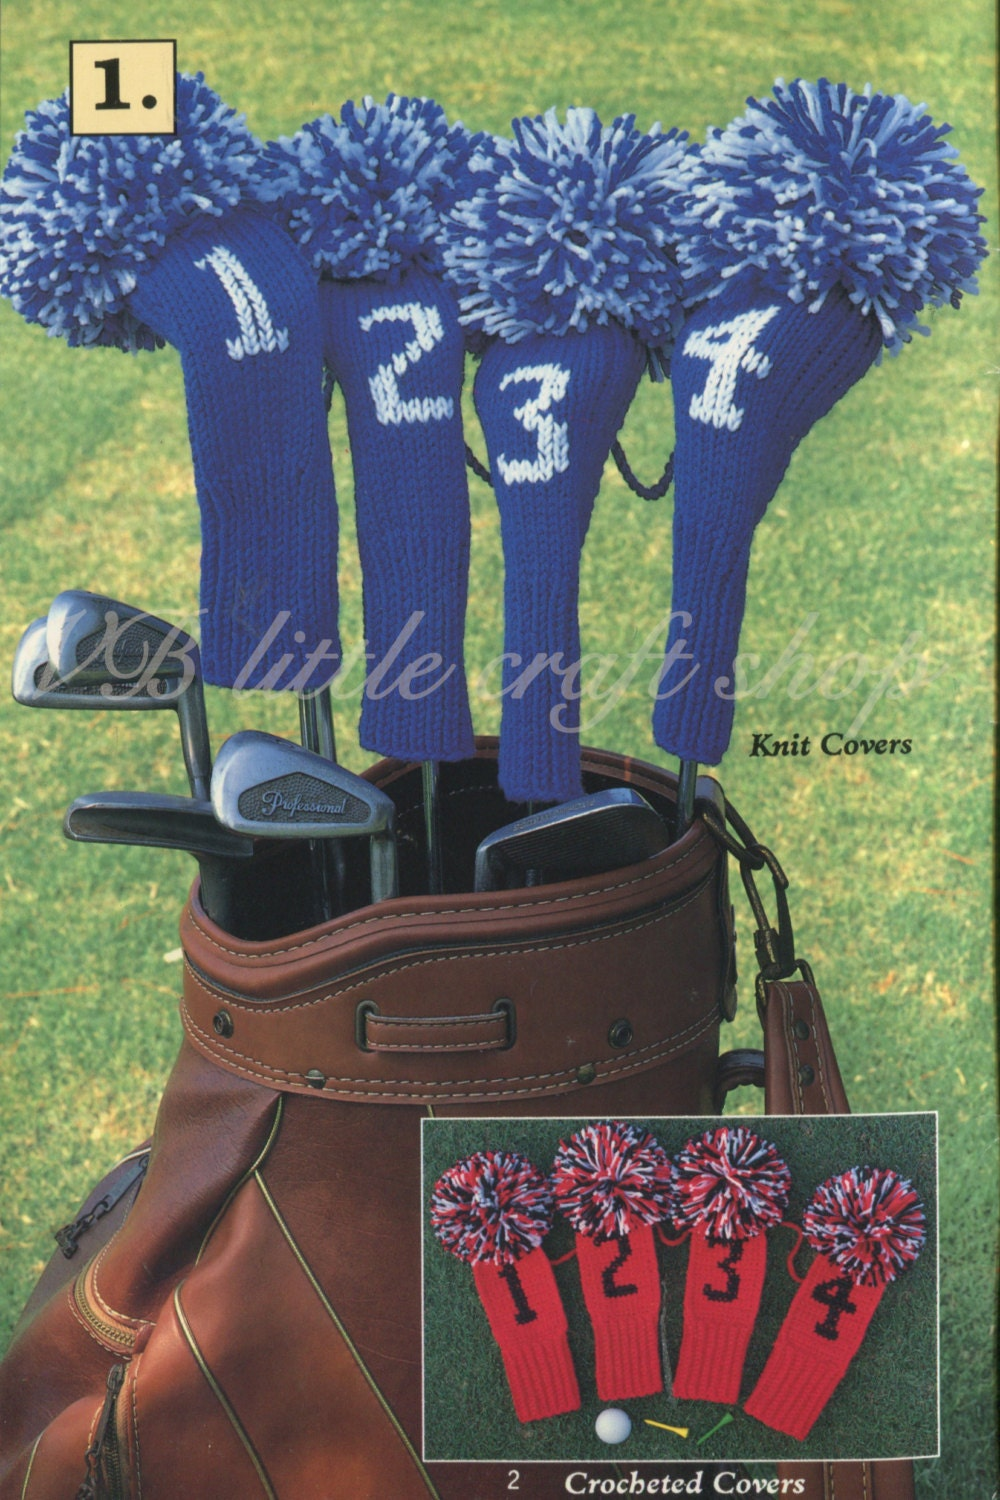 Golf club covers knitting and crochet pattern. Instant PDF